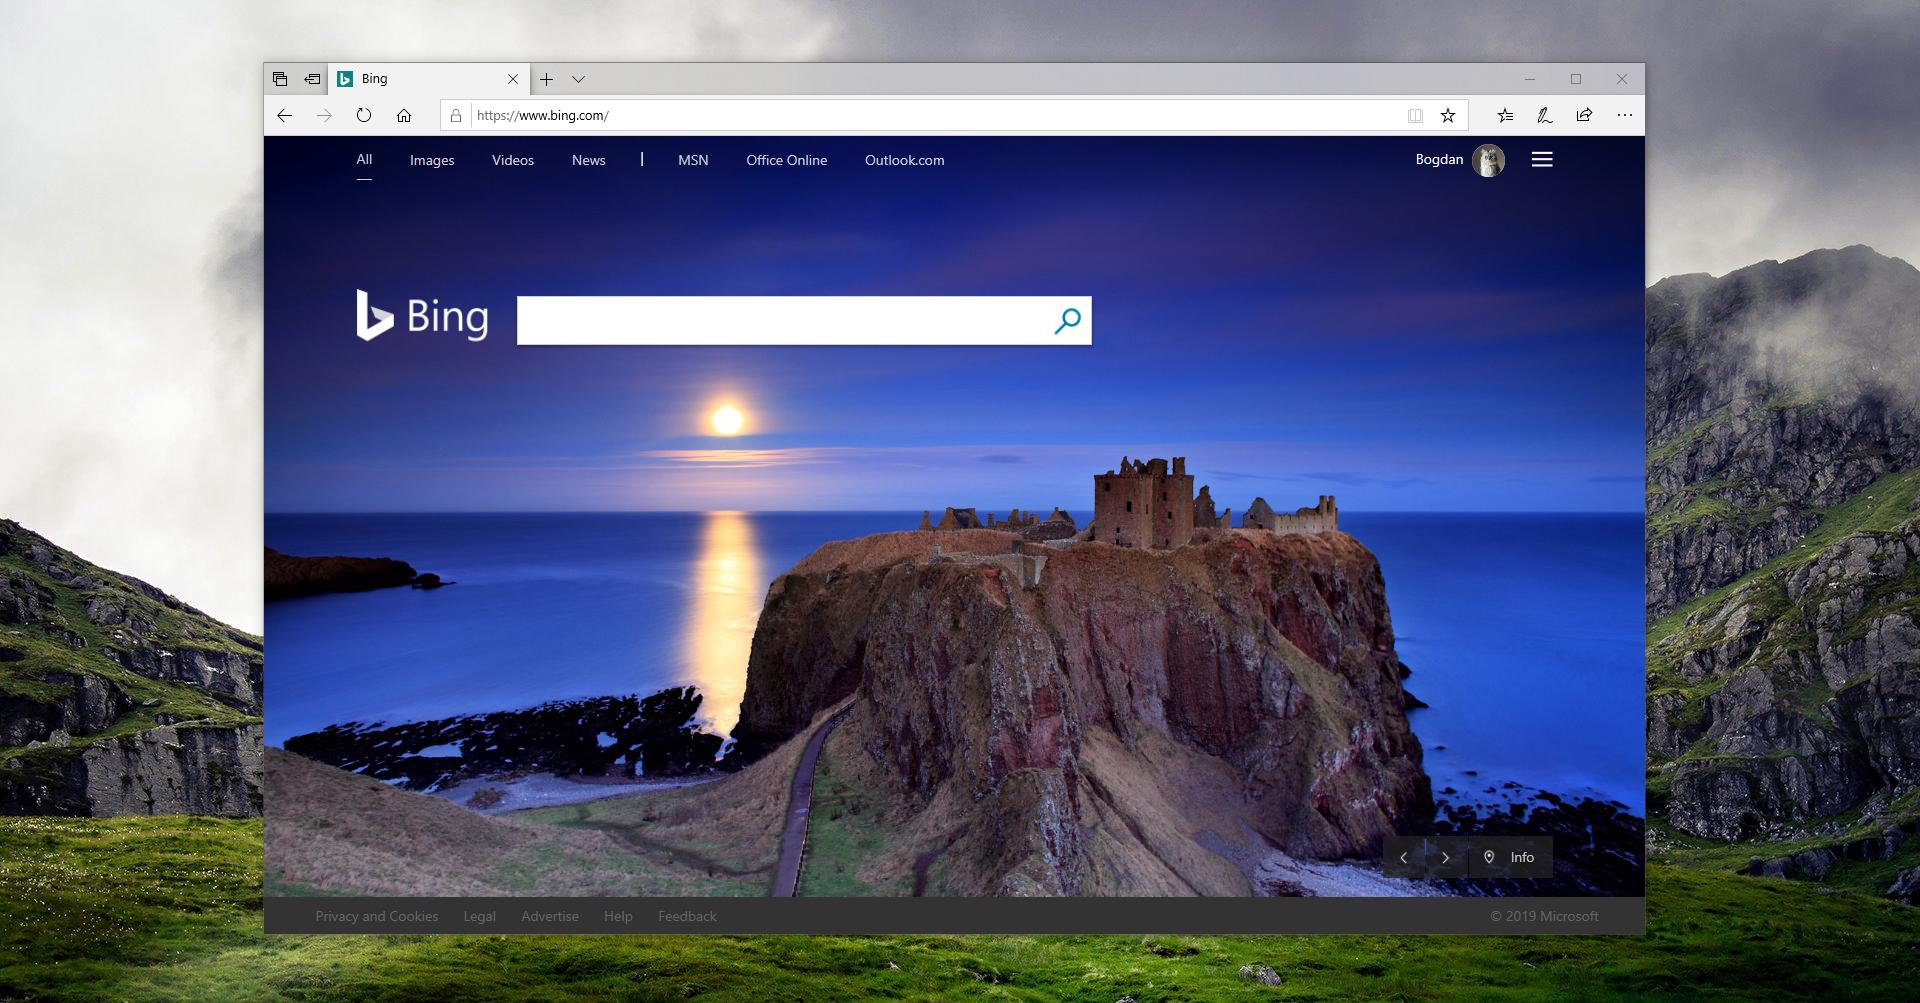 Microsoft search engine Bing blocked in China